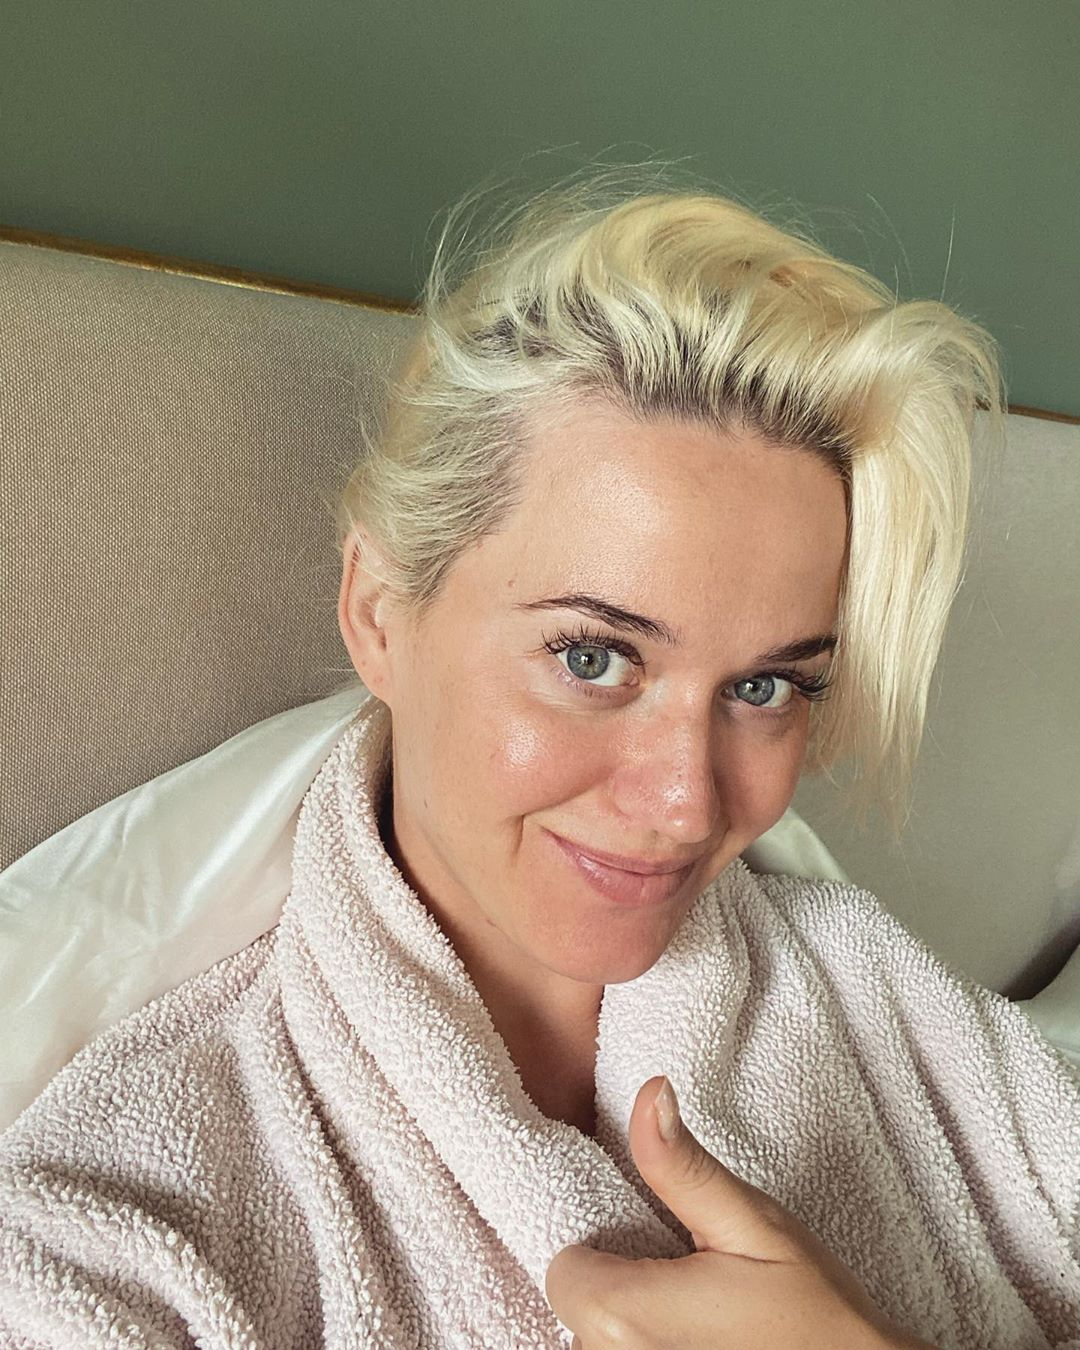 Katy Perry makeup free